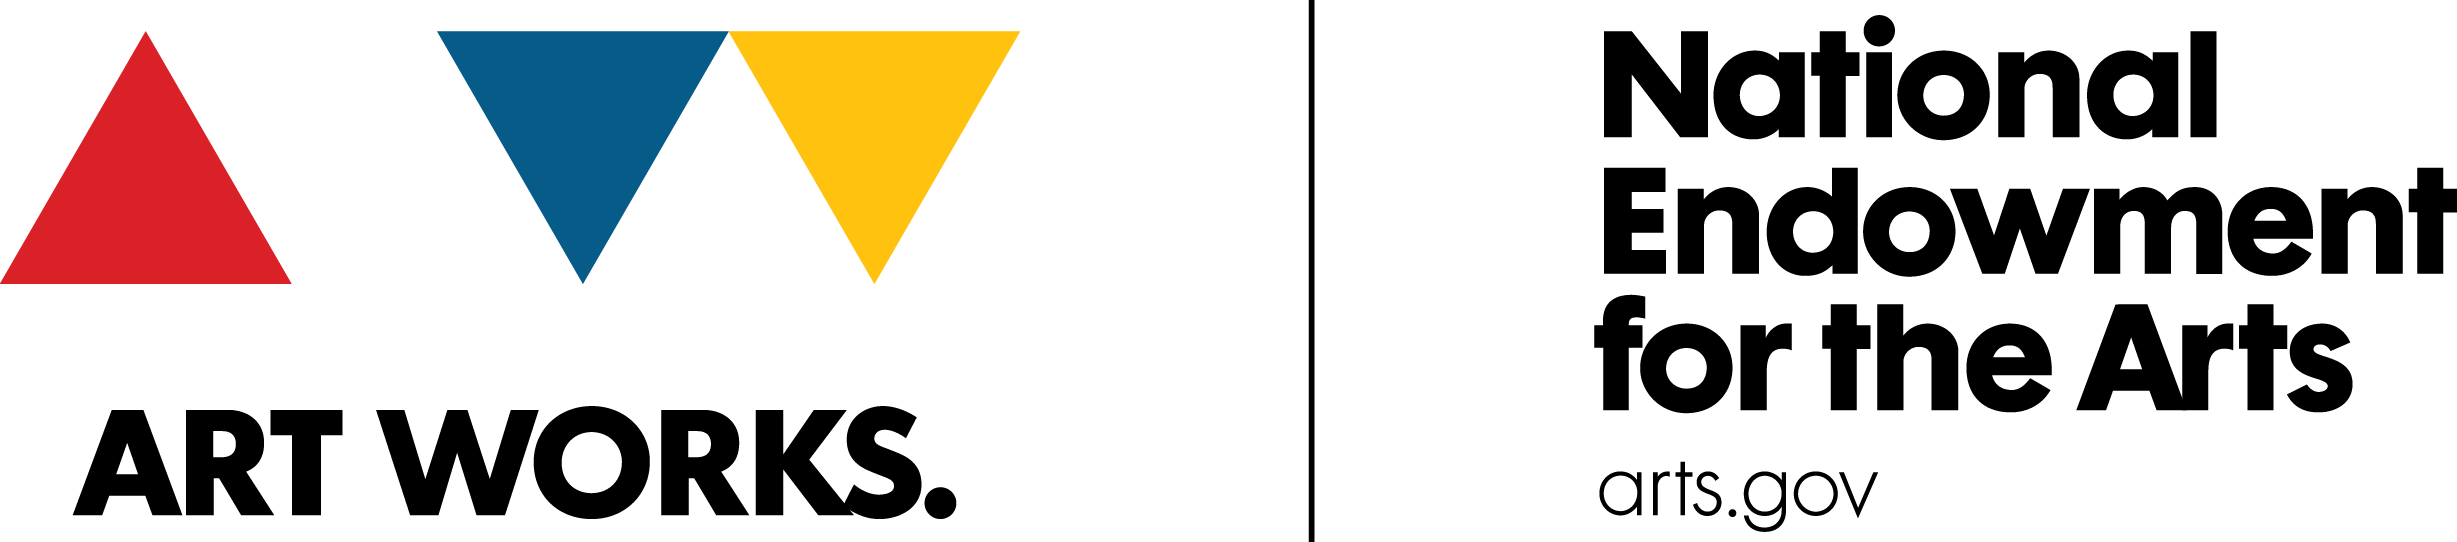 This program is made possible with support from the National Endowment for the Arts.